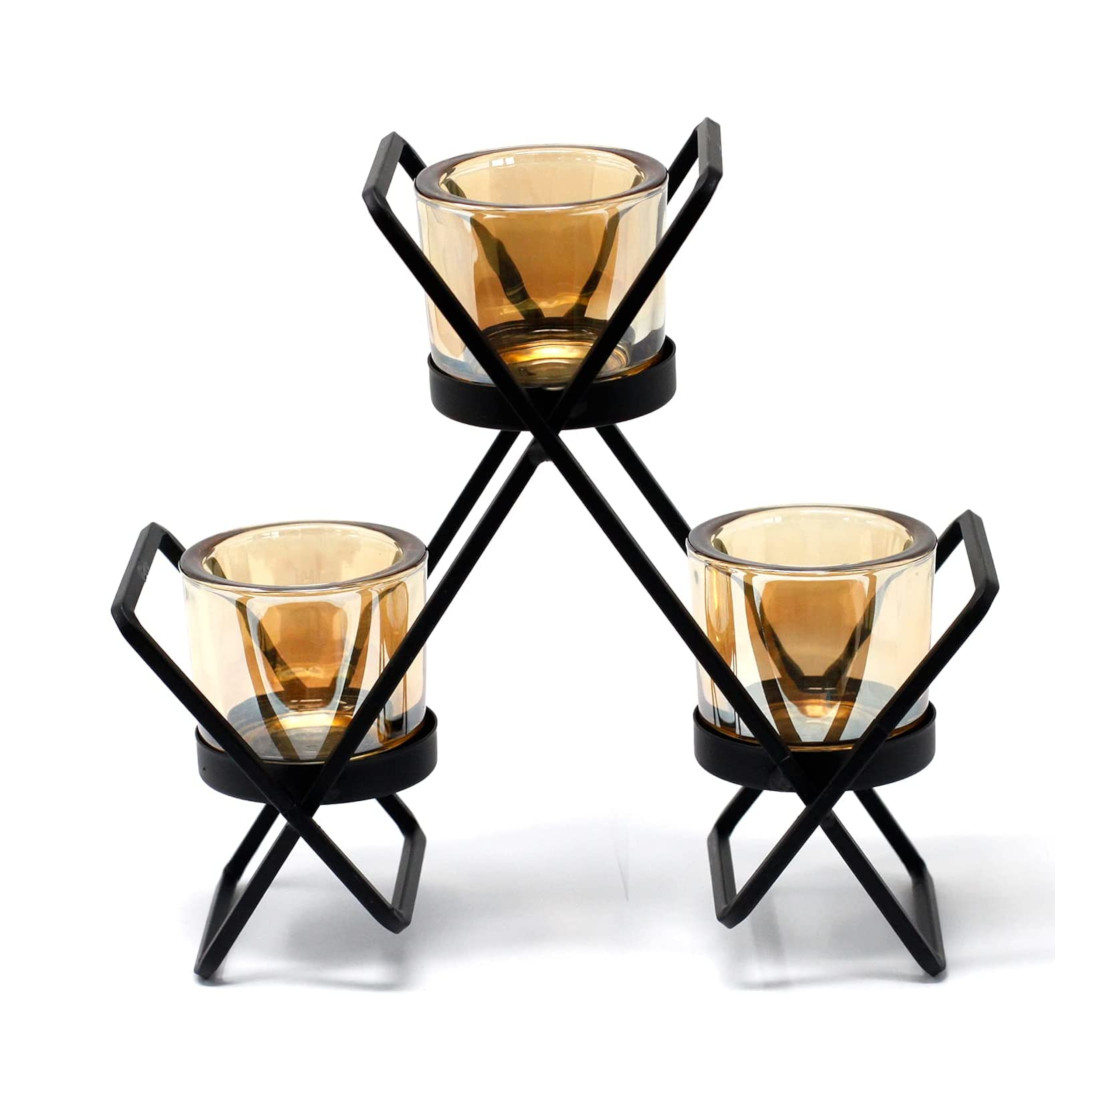 Ancient Wisdom Centerpiece Iron Candle Holder - 3 Cup Triangle